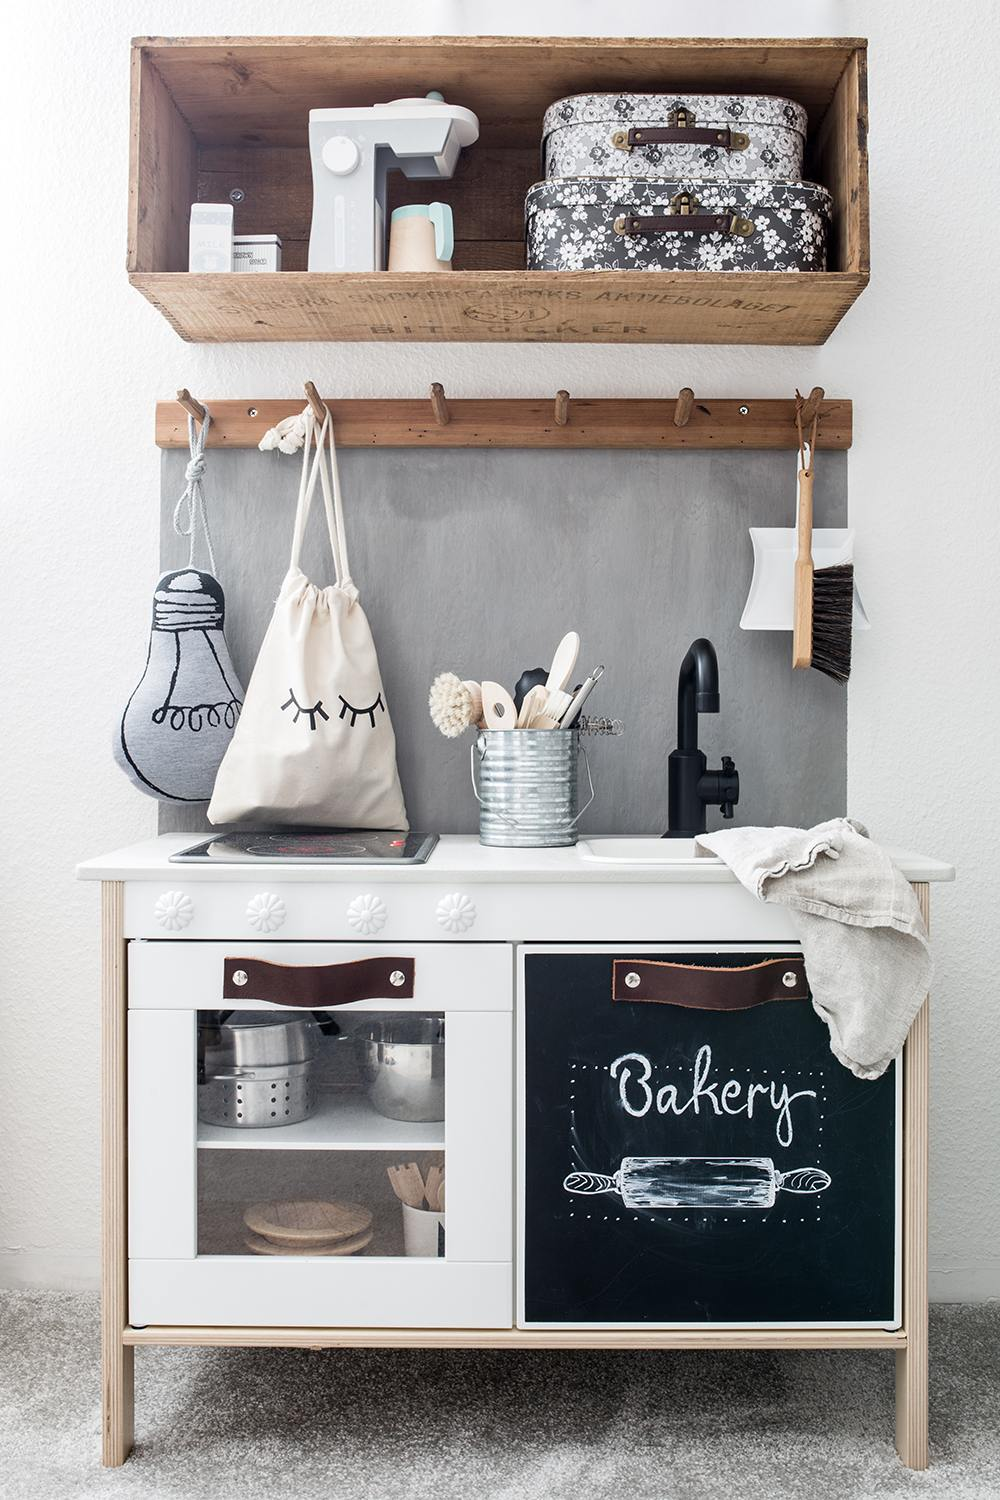 ikea duktig play kitchen DIY makeover